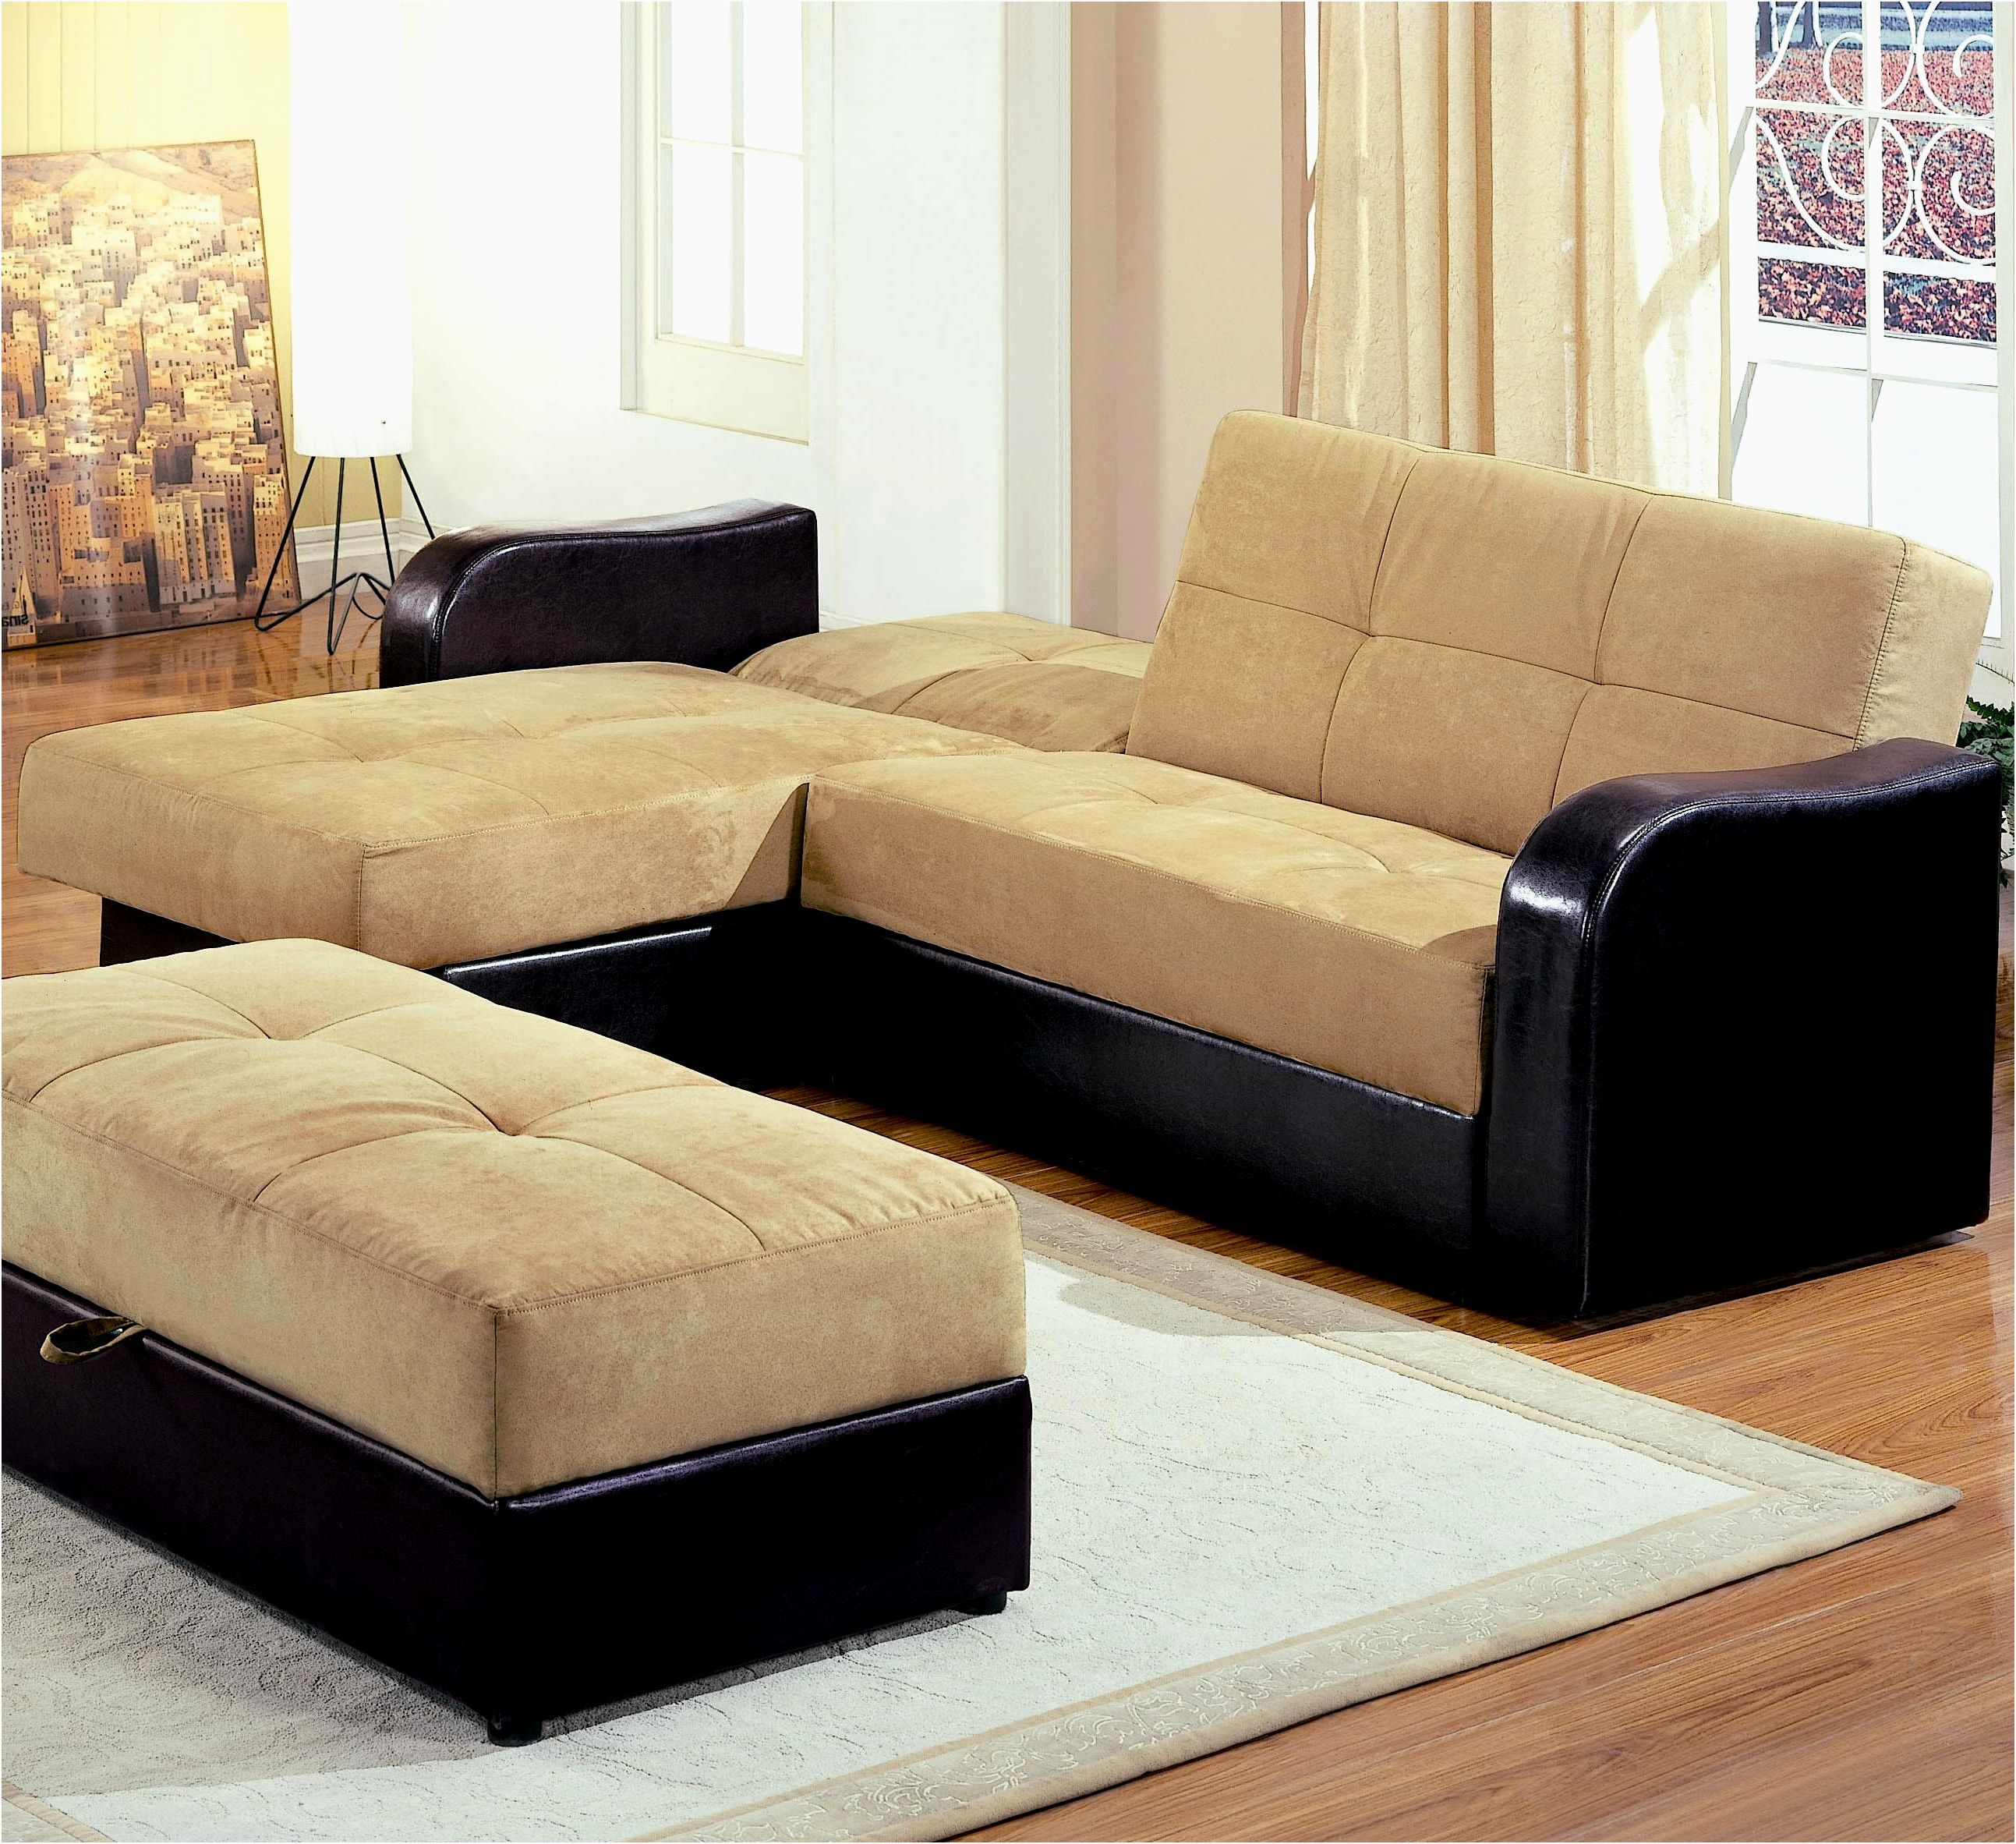 wonderful sleeper sofas for sale photograph-Lovely Sleeper sofas for Sale Wallpaper